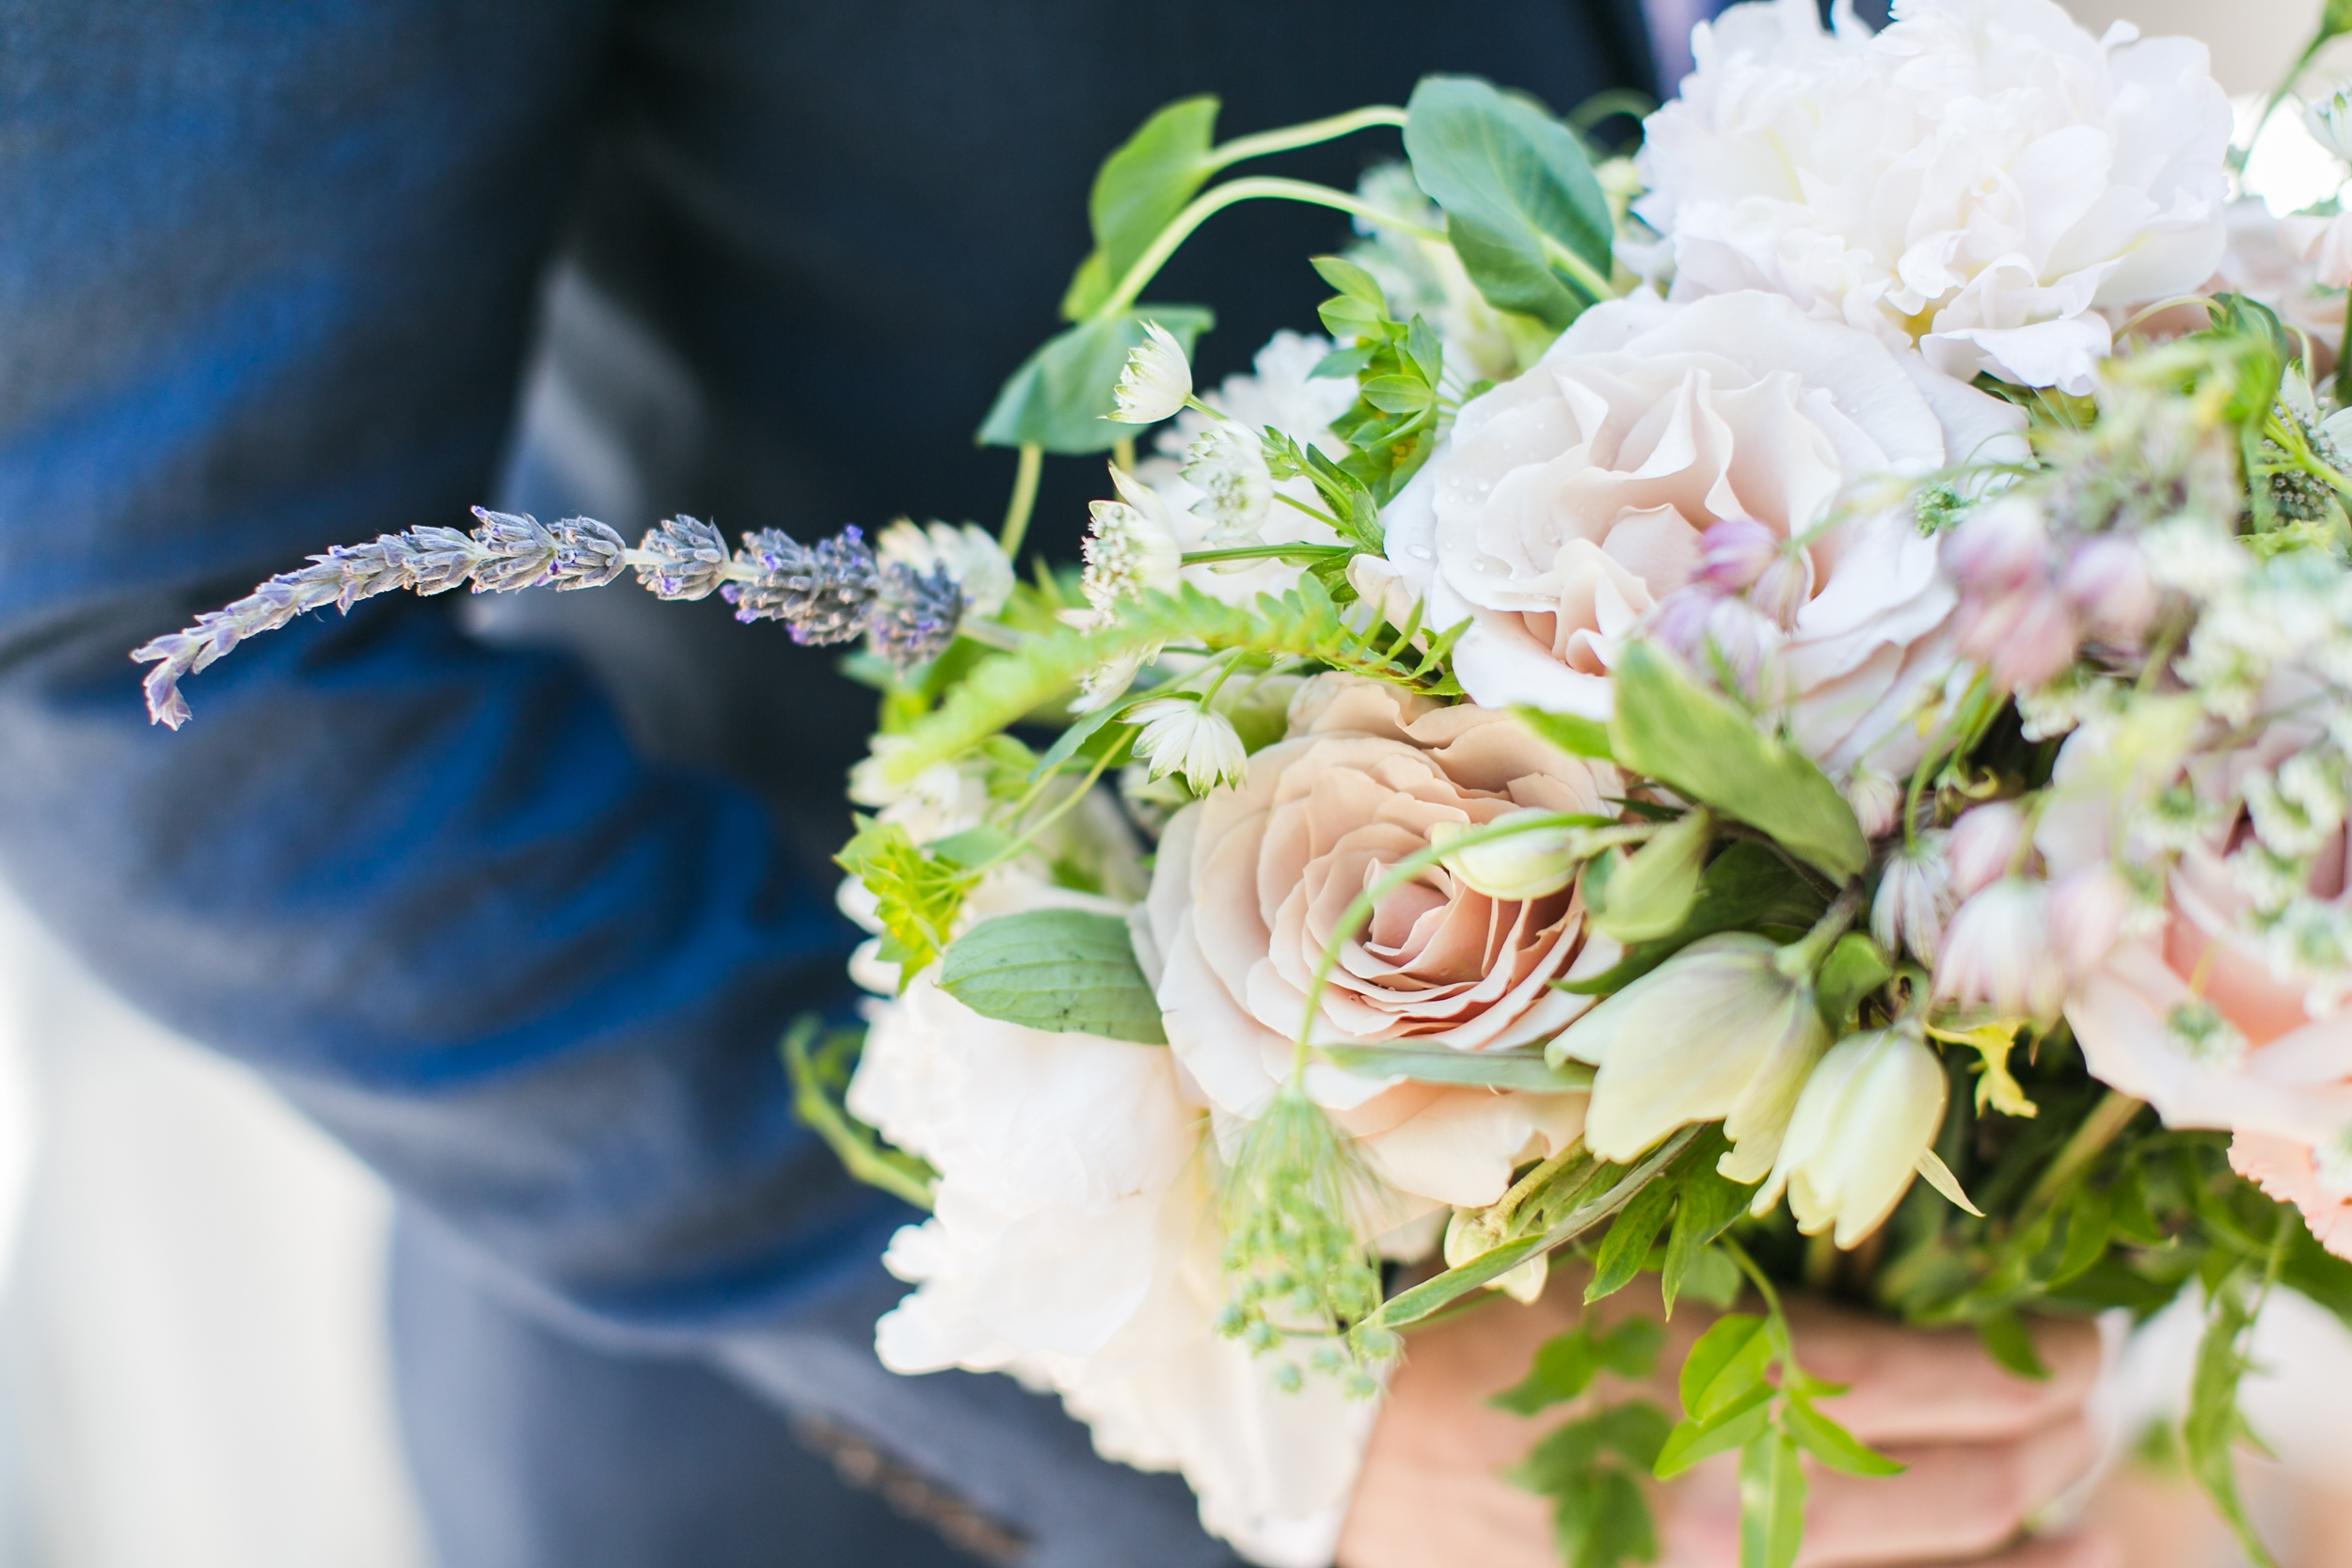 groom-holding-mixed-floral-bridal-bouquet-carrie-vines-photography.jpg